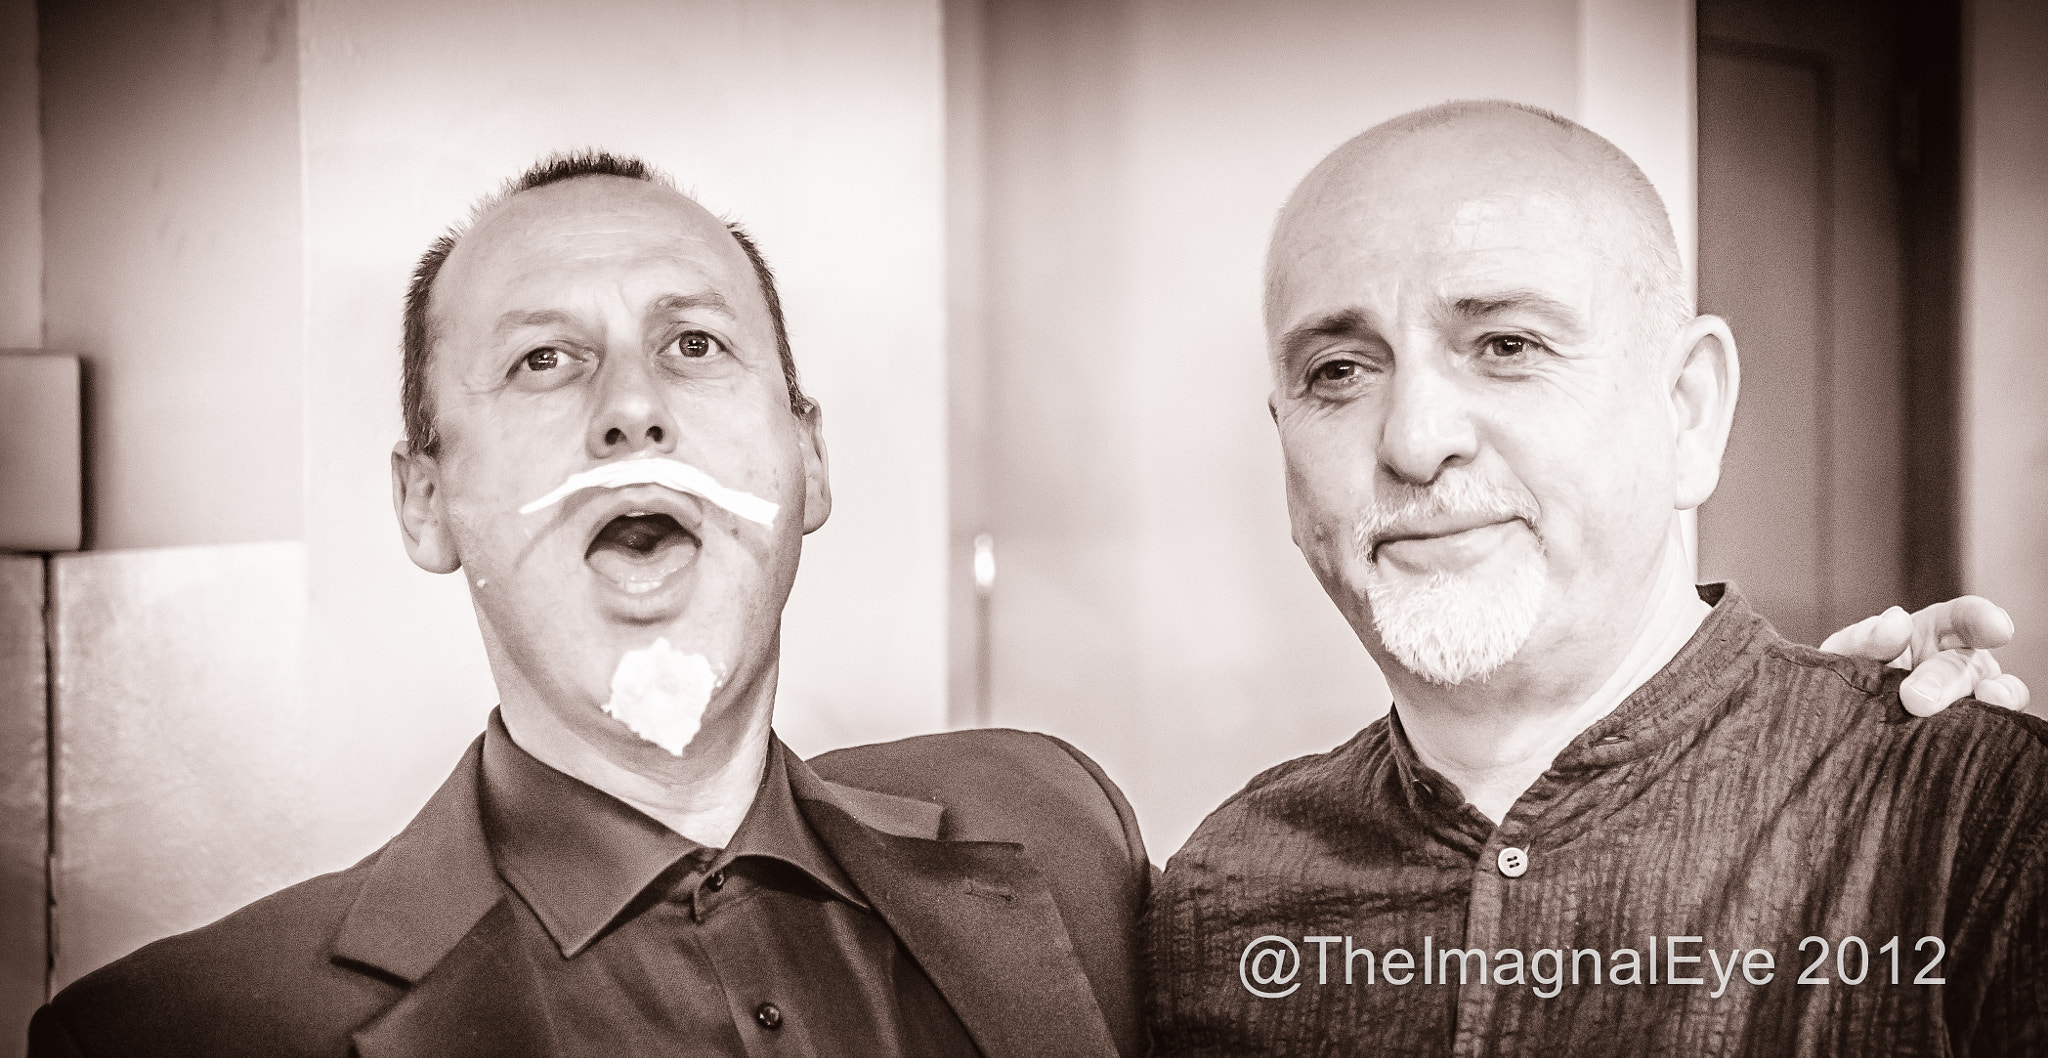 Photograph The uncanny resemblance between Berthold Anfanger and his doppelganger, Peter Gabriel.  by Pip Eastop on 500px